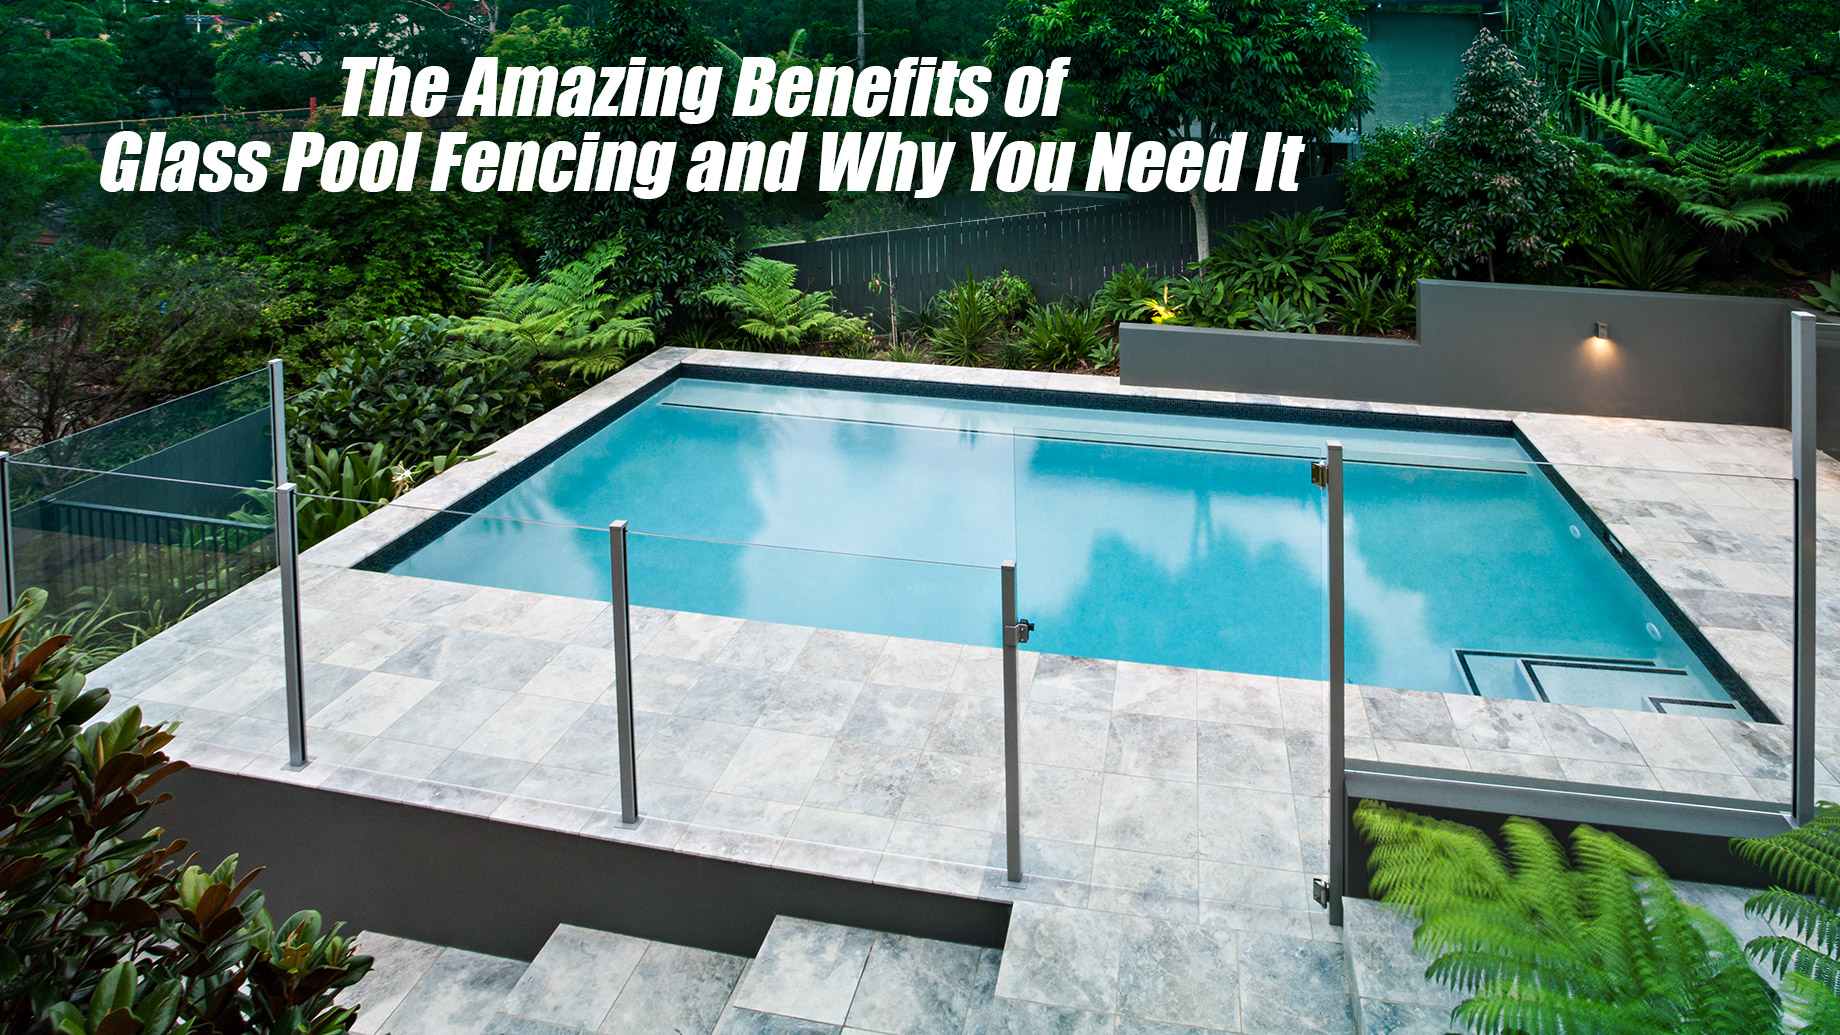 The Amazing Benefits of Glass Pool Fencing and Why You Need It